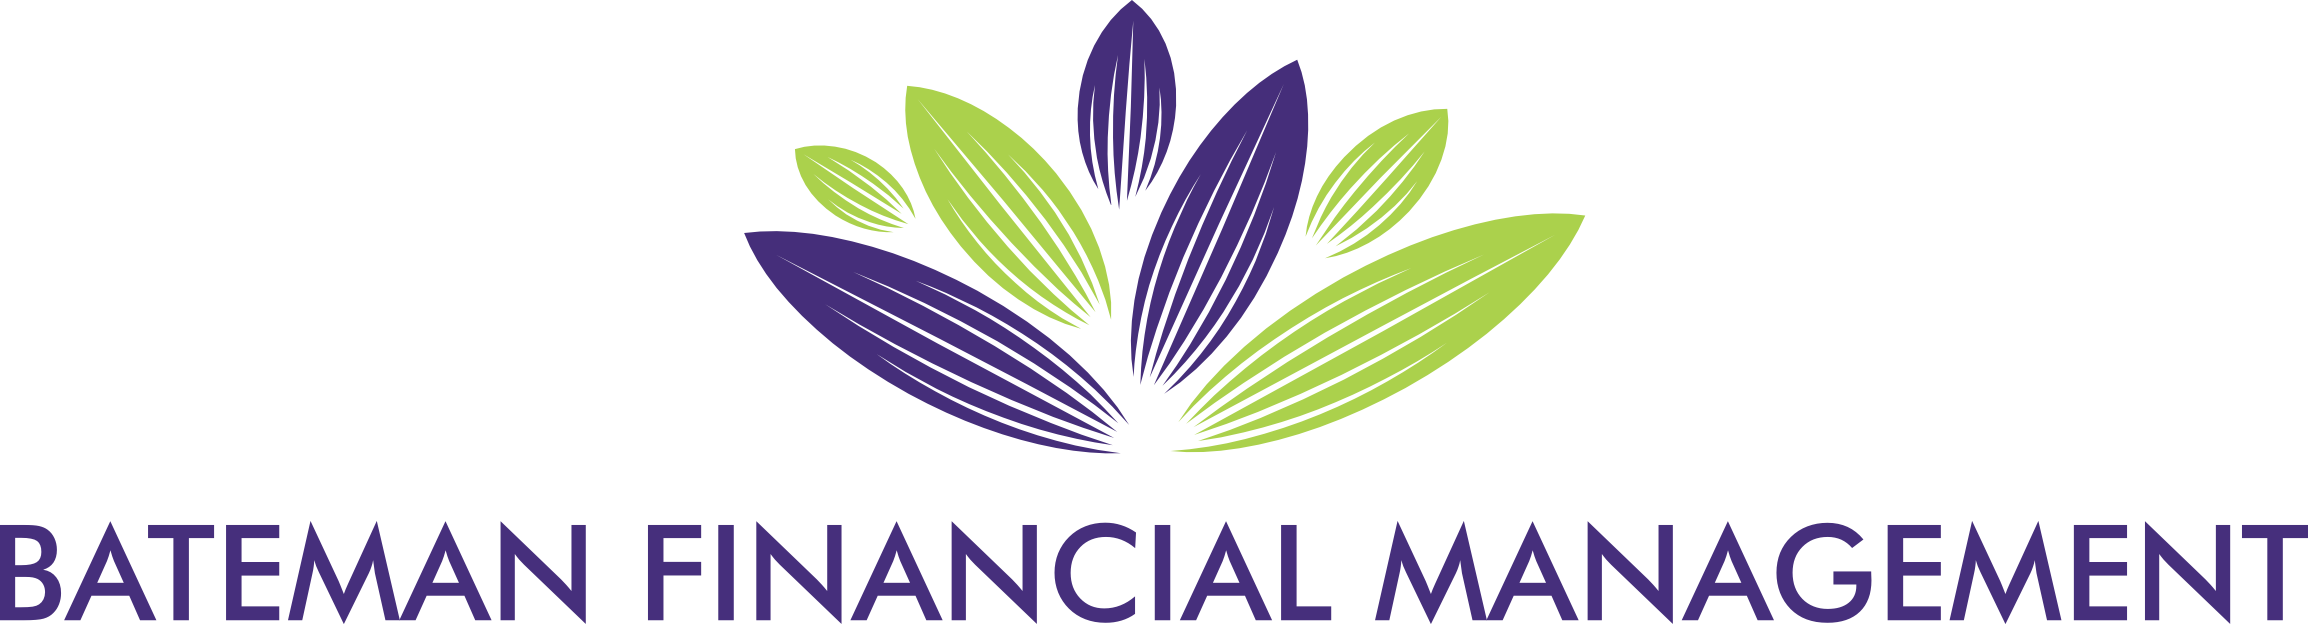 Bateman Financial Management Ltd logo